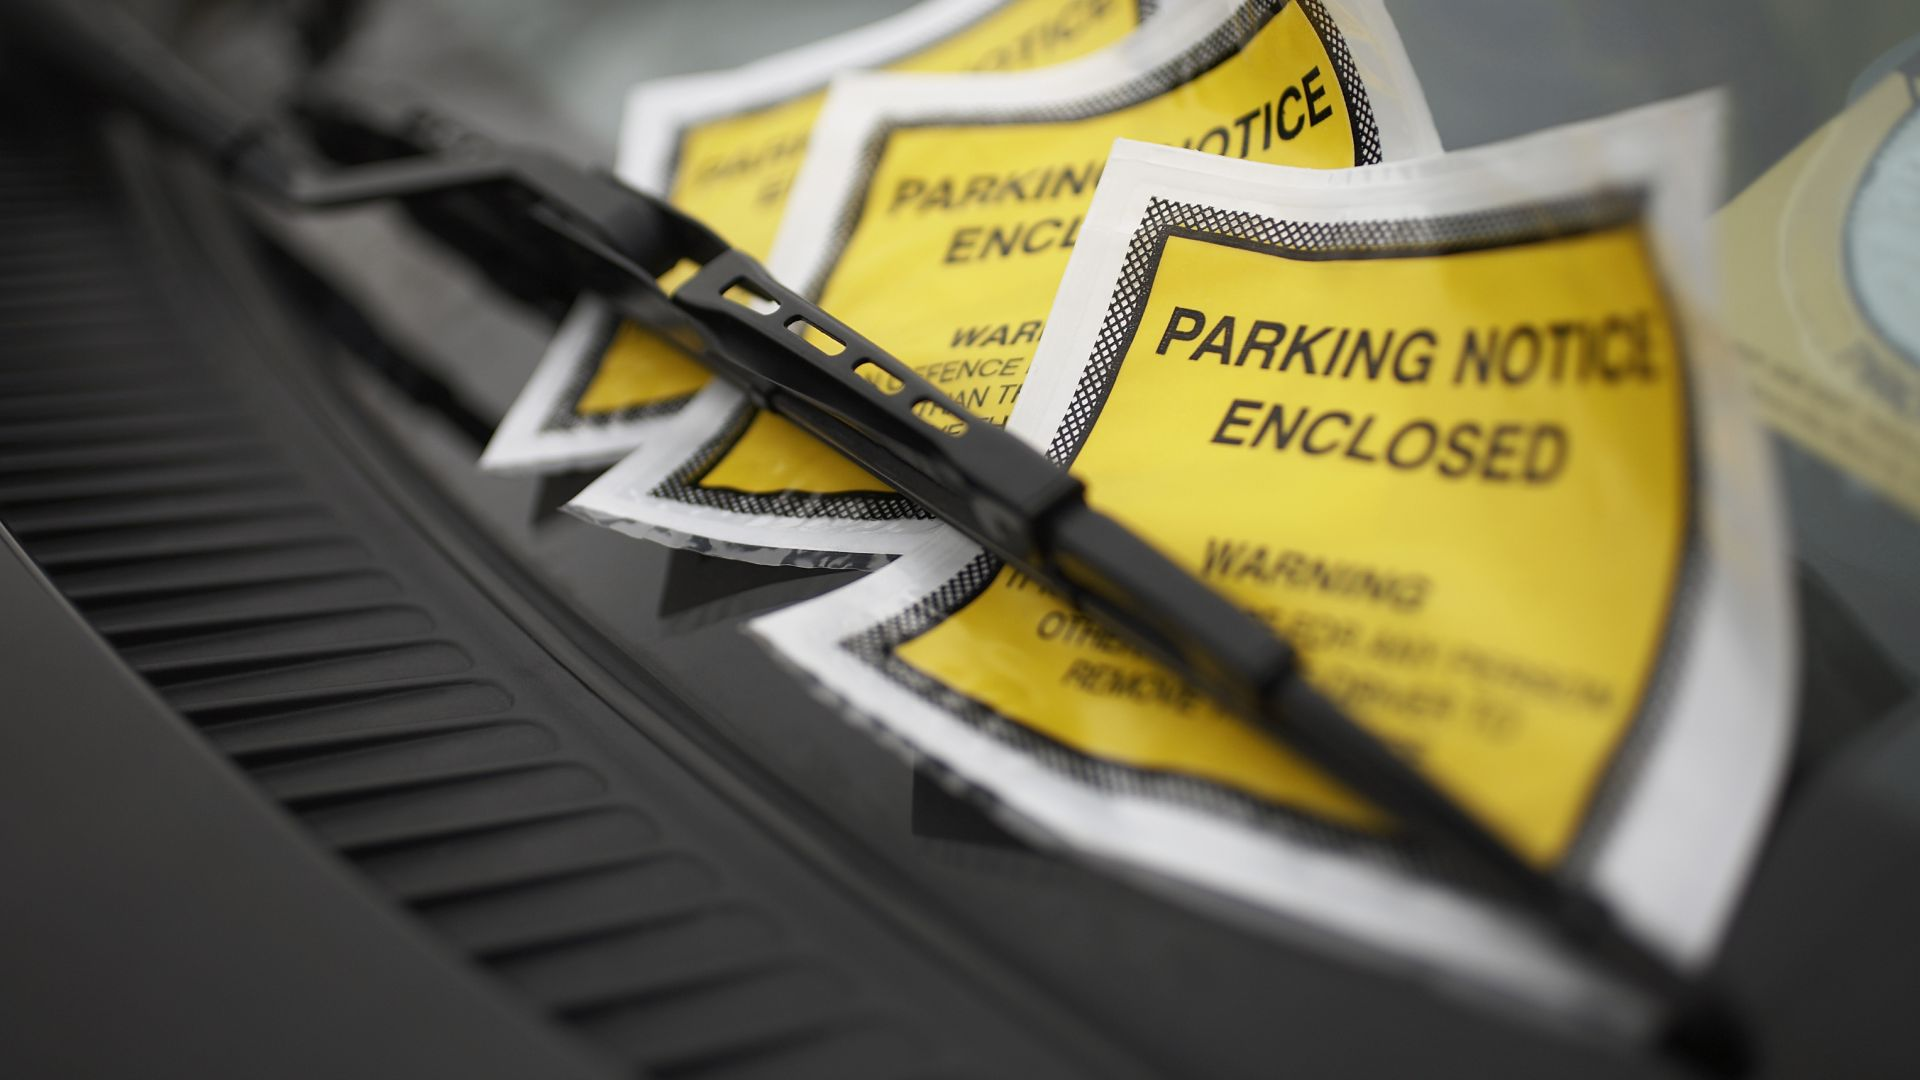 Parking profiteers: councils make millions from parking fines